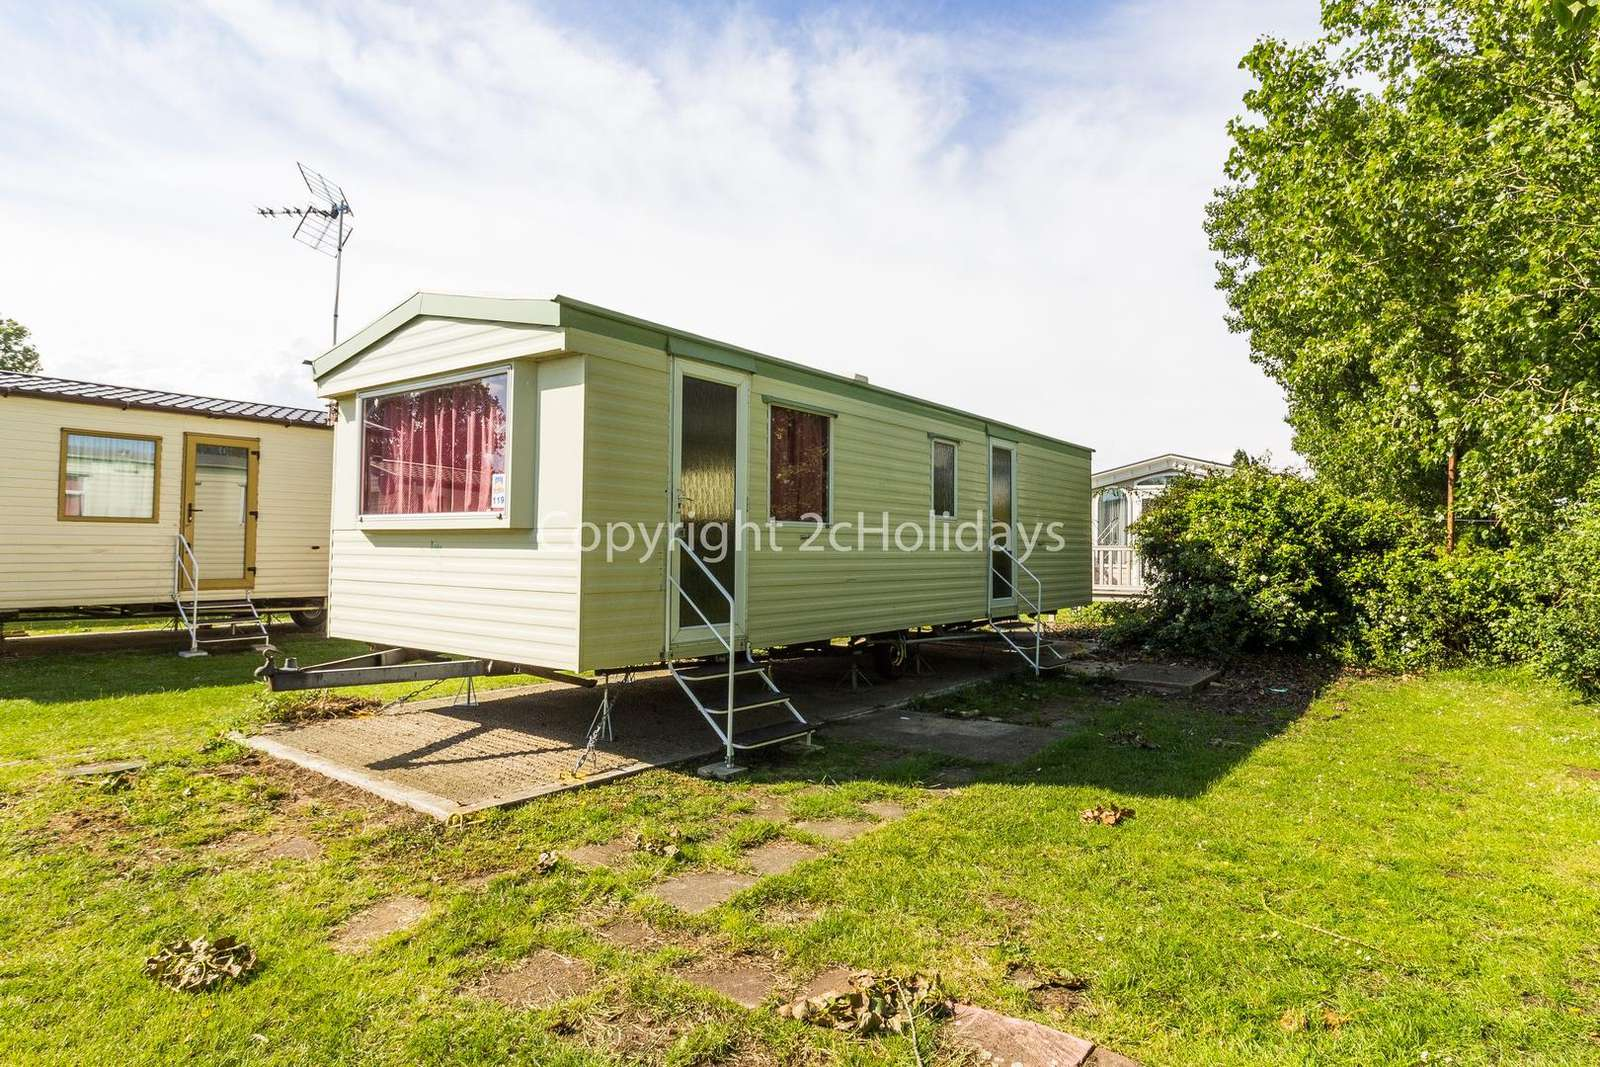 Cosy mobile home sited on a brilliant family holiday park with great amenities - property